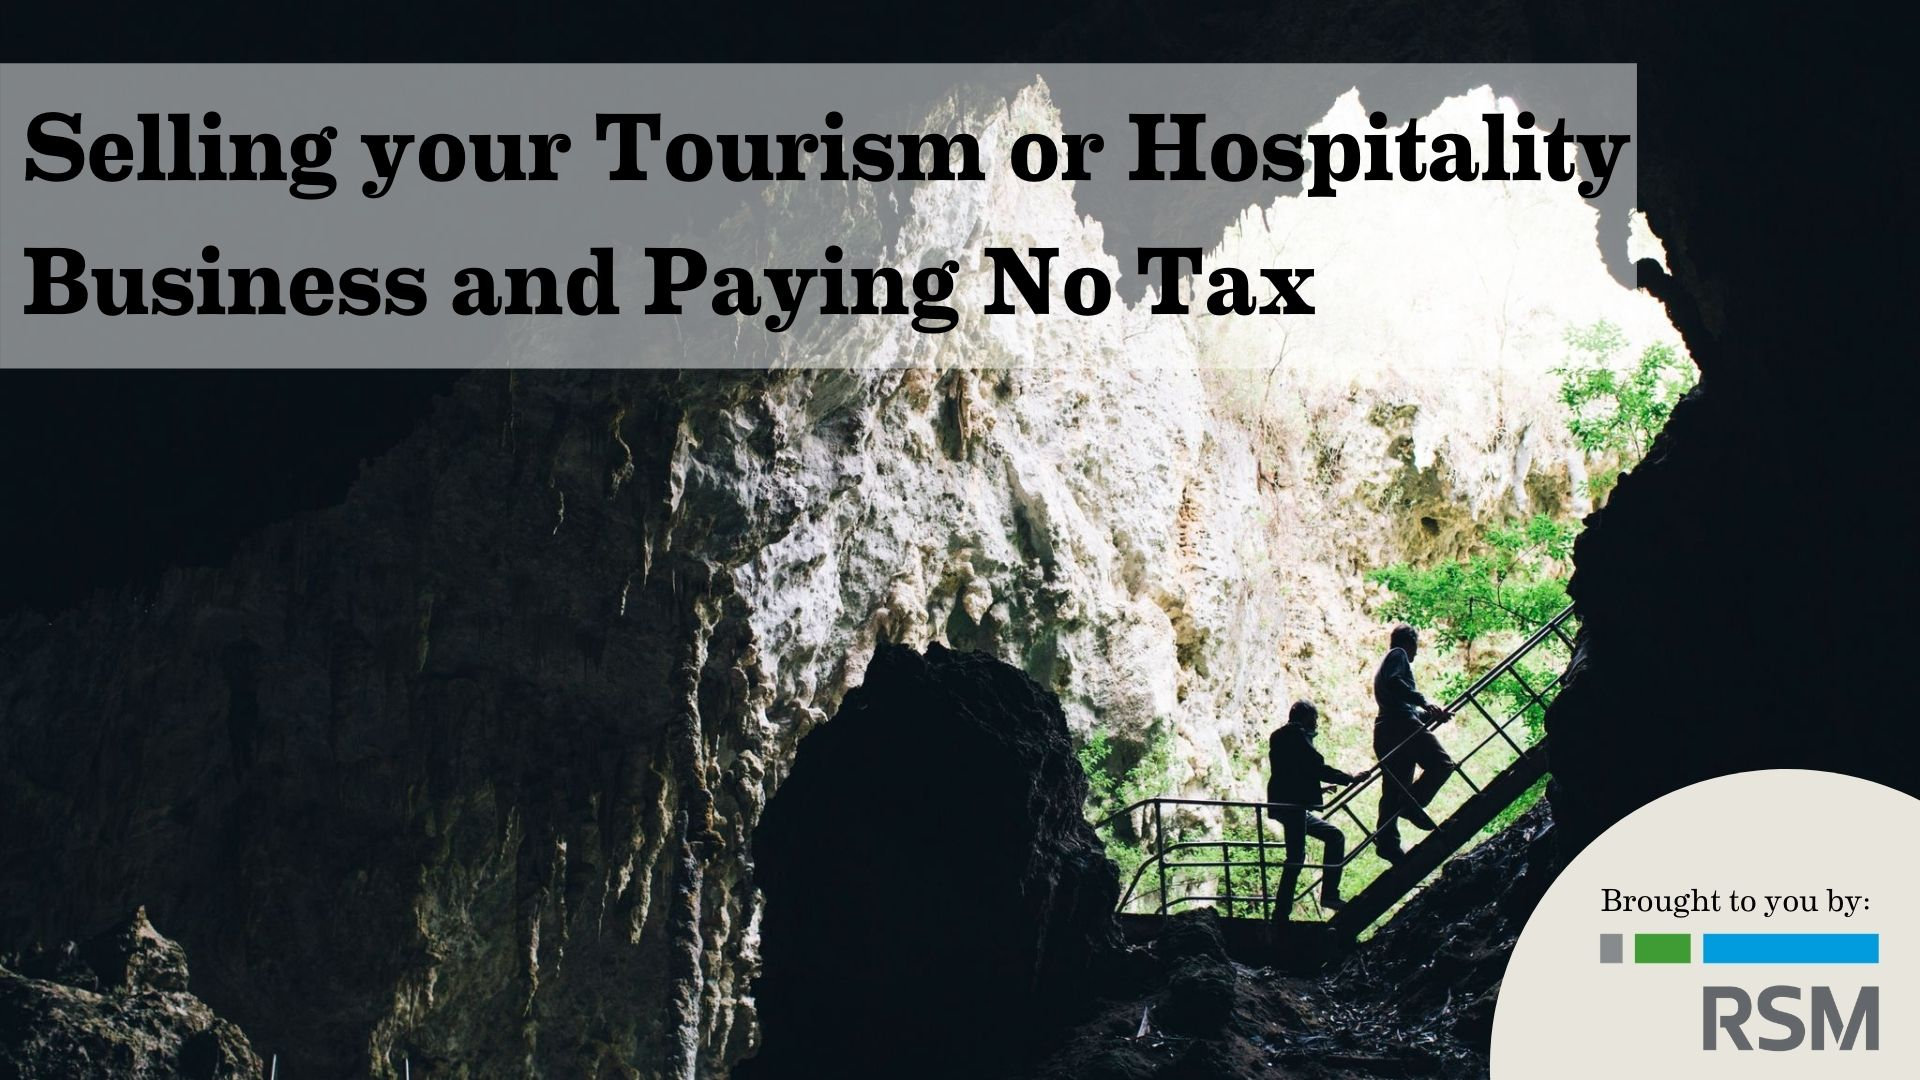 RSM Australia: Selling your tourism or hospitality business and paying no tax